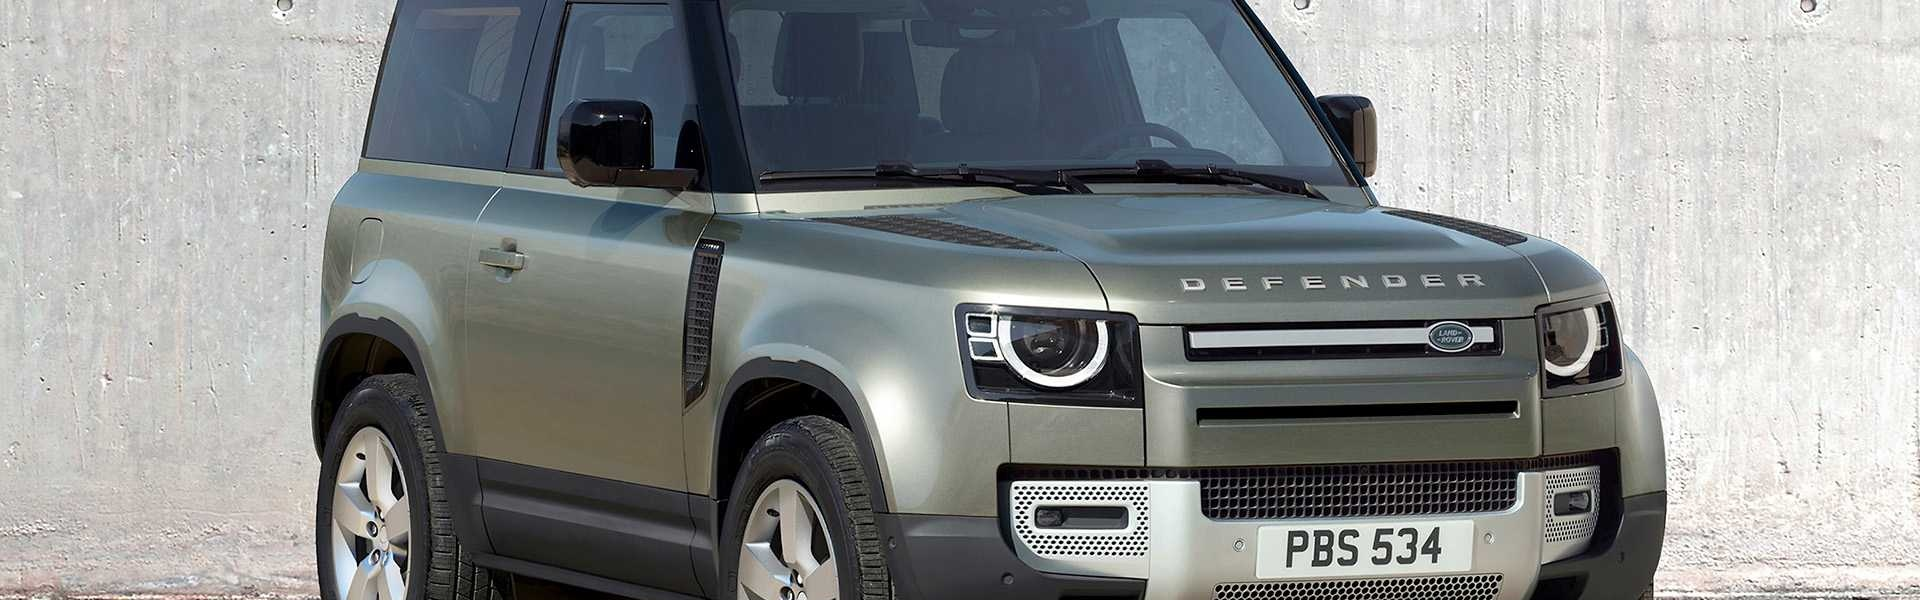 land-rover-defender-2020my.jpg